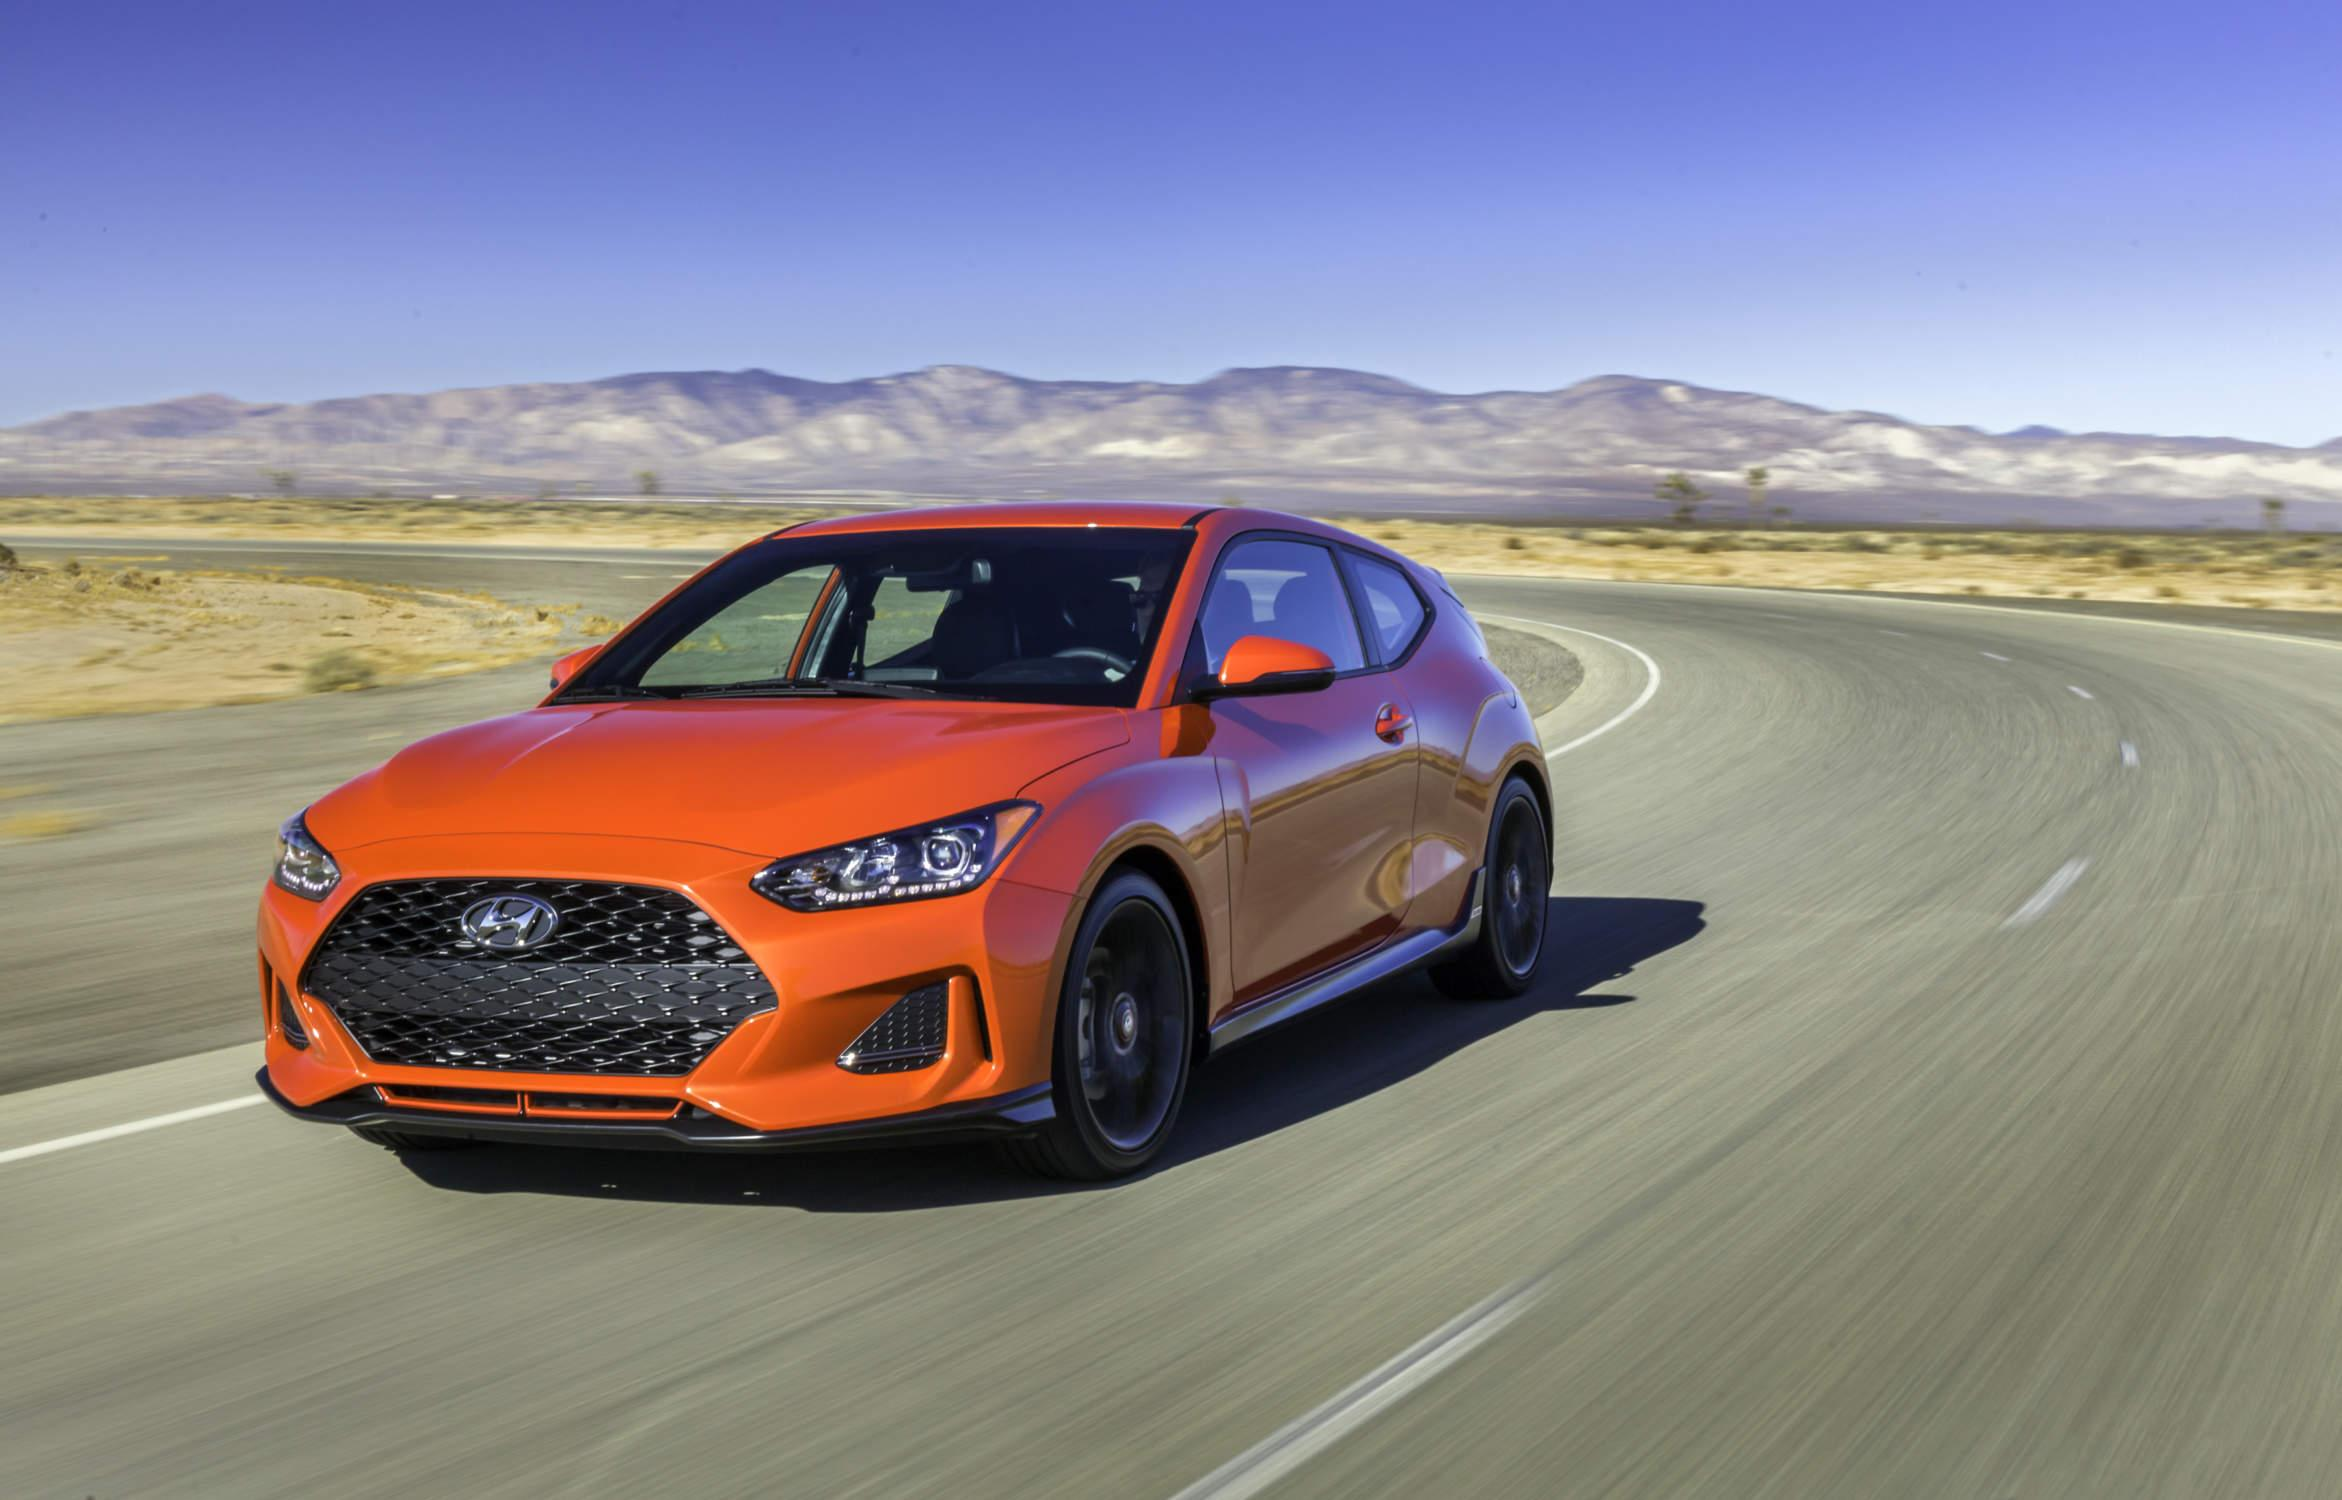 Salon de Detroit : Le Hyundai Veloster fait son come-back